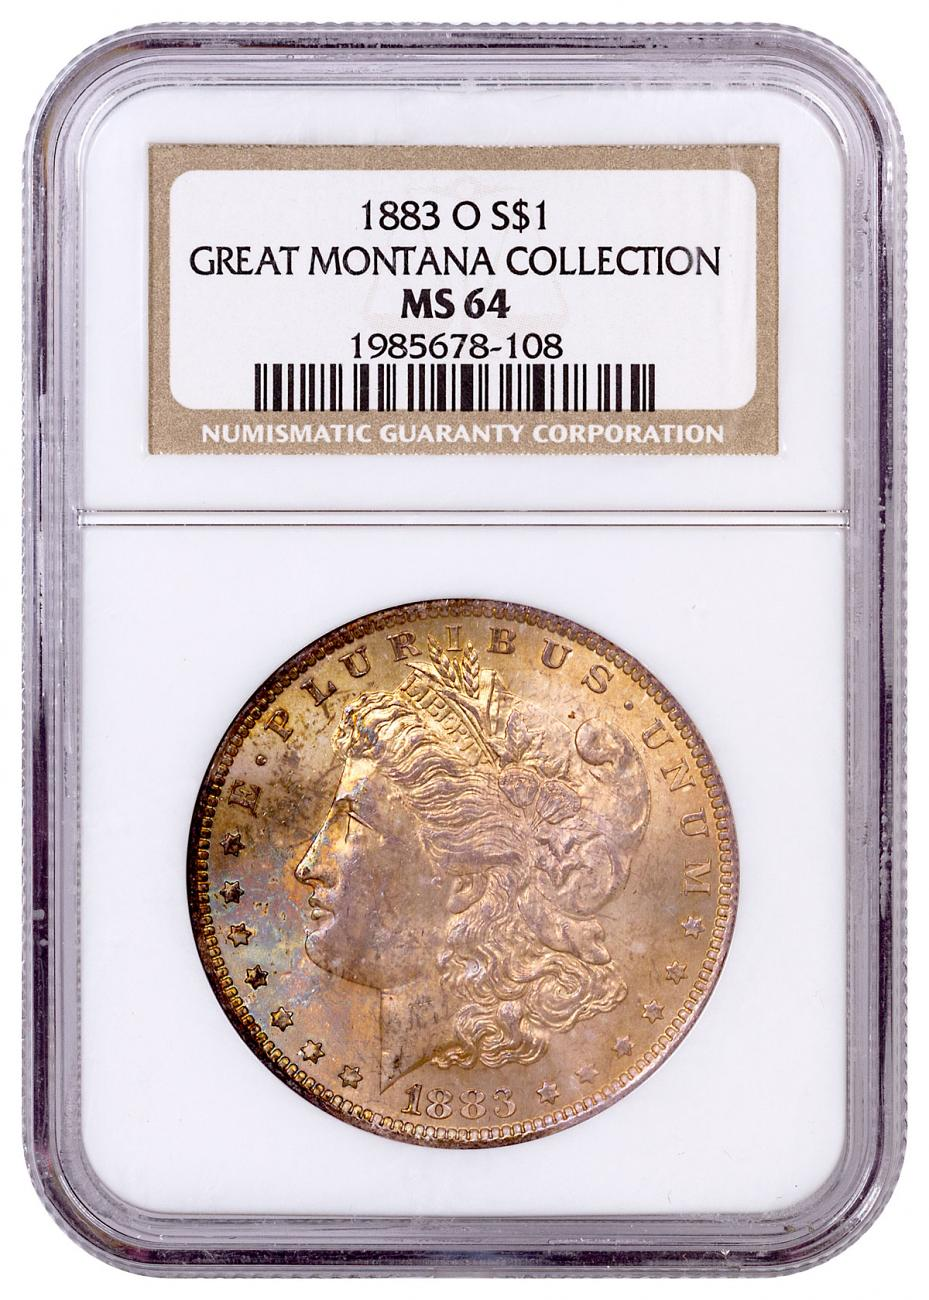 1883-O Morgan Silver Dollar From the Great Montana Collection NGC MS64 Toned CPCR 8108